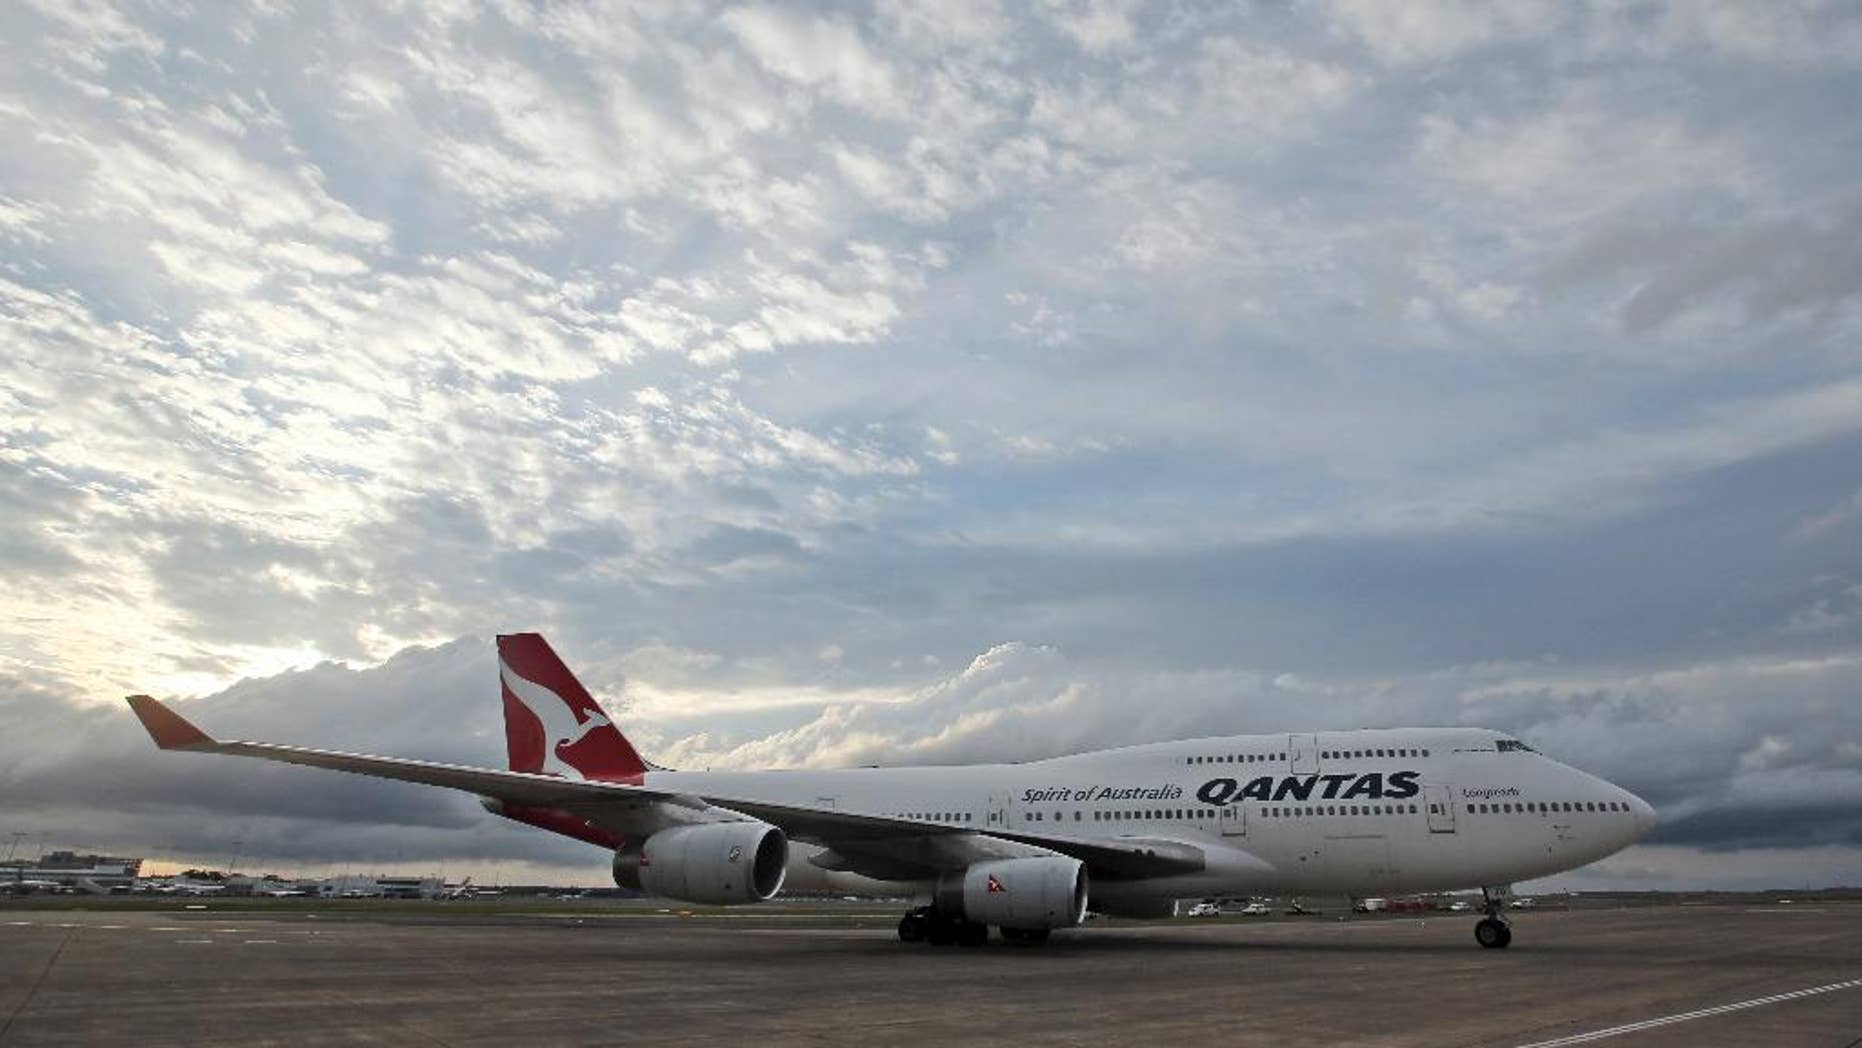 FILE - In this Tuesday, Sept. 13, 2016 file photo, a Qantas jet taxis on the runway at Sydney Airport in Sydney, Australia. Around 100 passengers on board a Qantas regional jet in Australia were evacuated via the plane's emergency slides upon landing on Friday, Sept. 23 after the crew noticed fumes inside the cabin, officials said. (AP Photo/Rob Griffith, File)